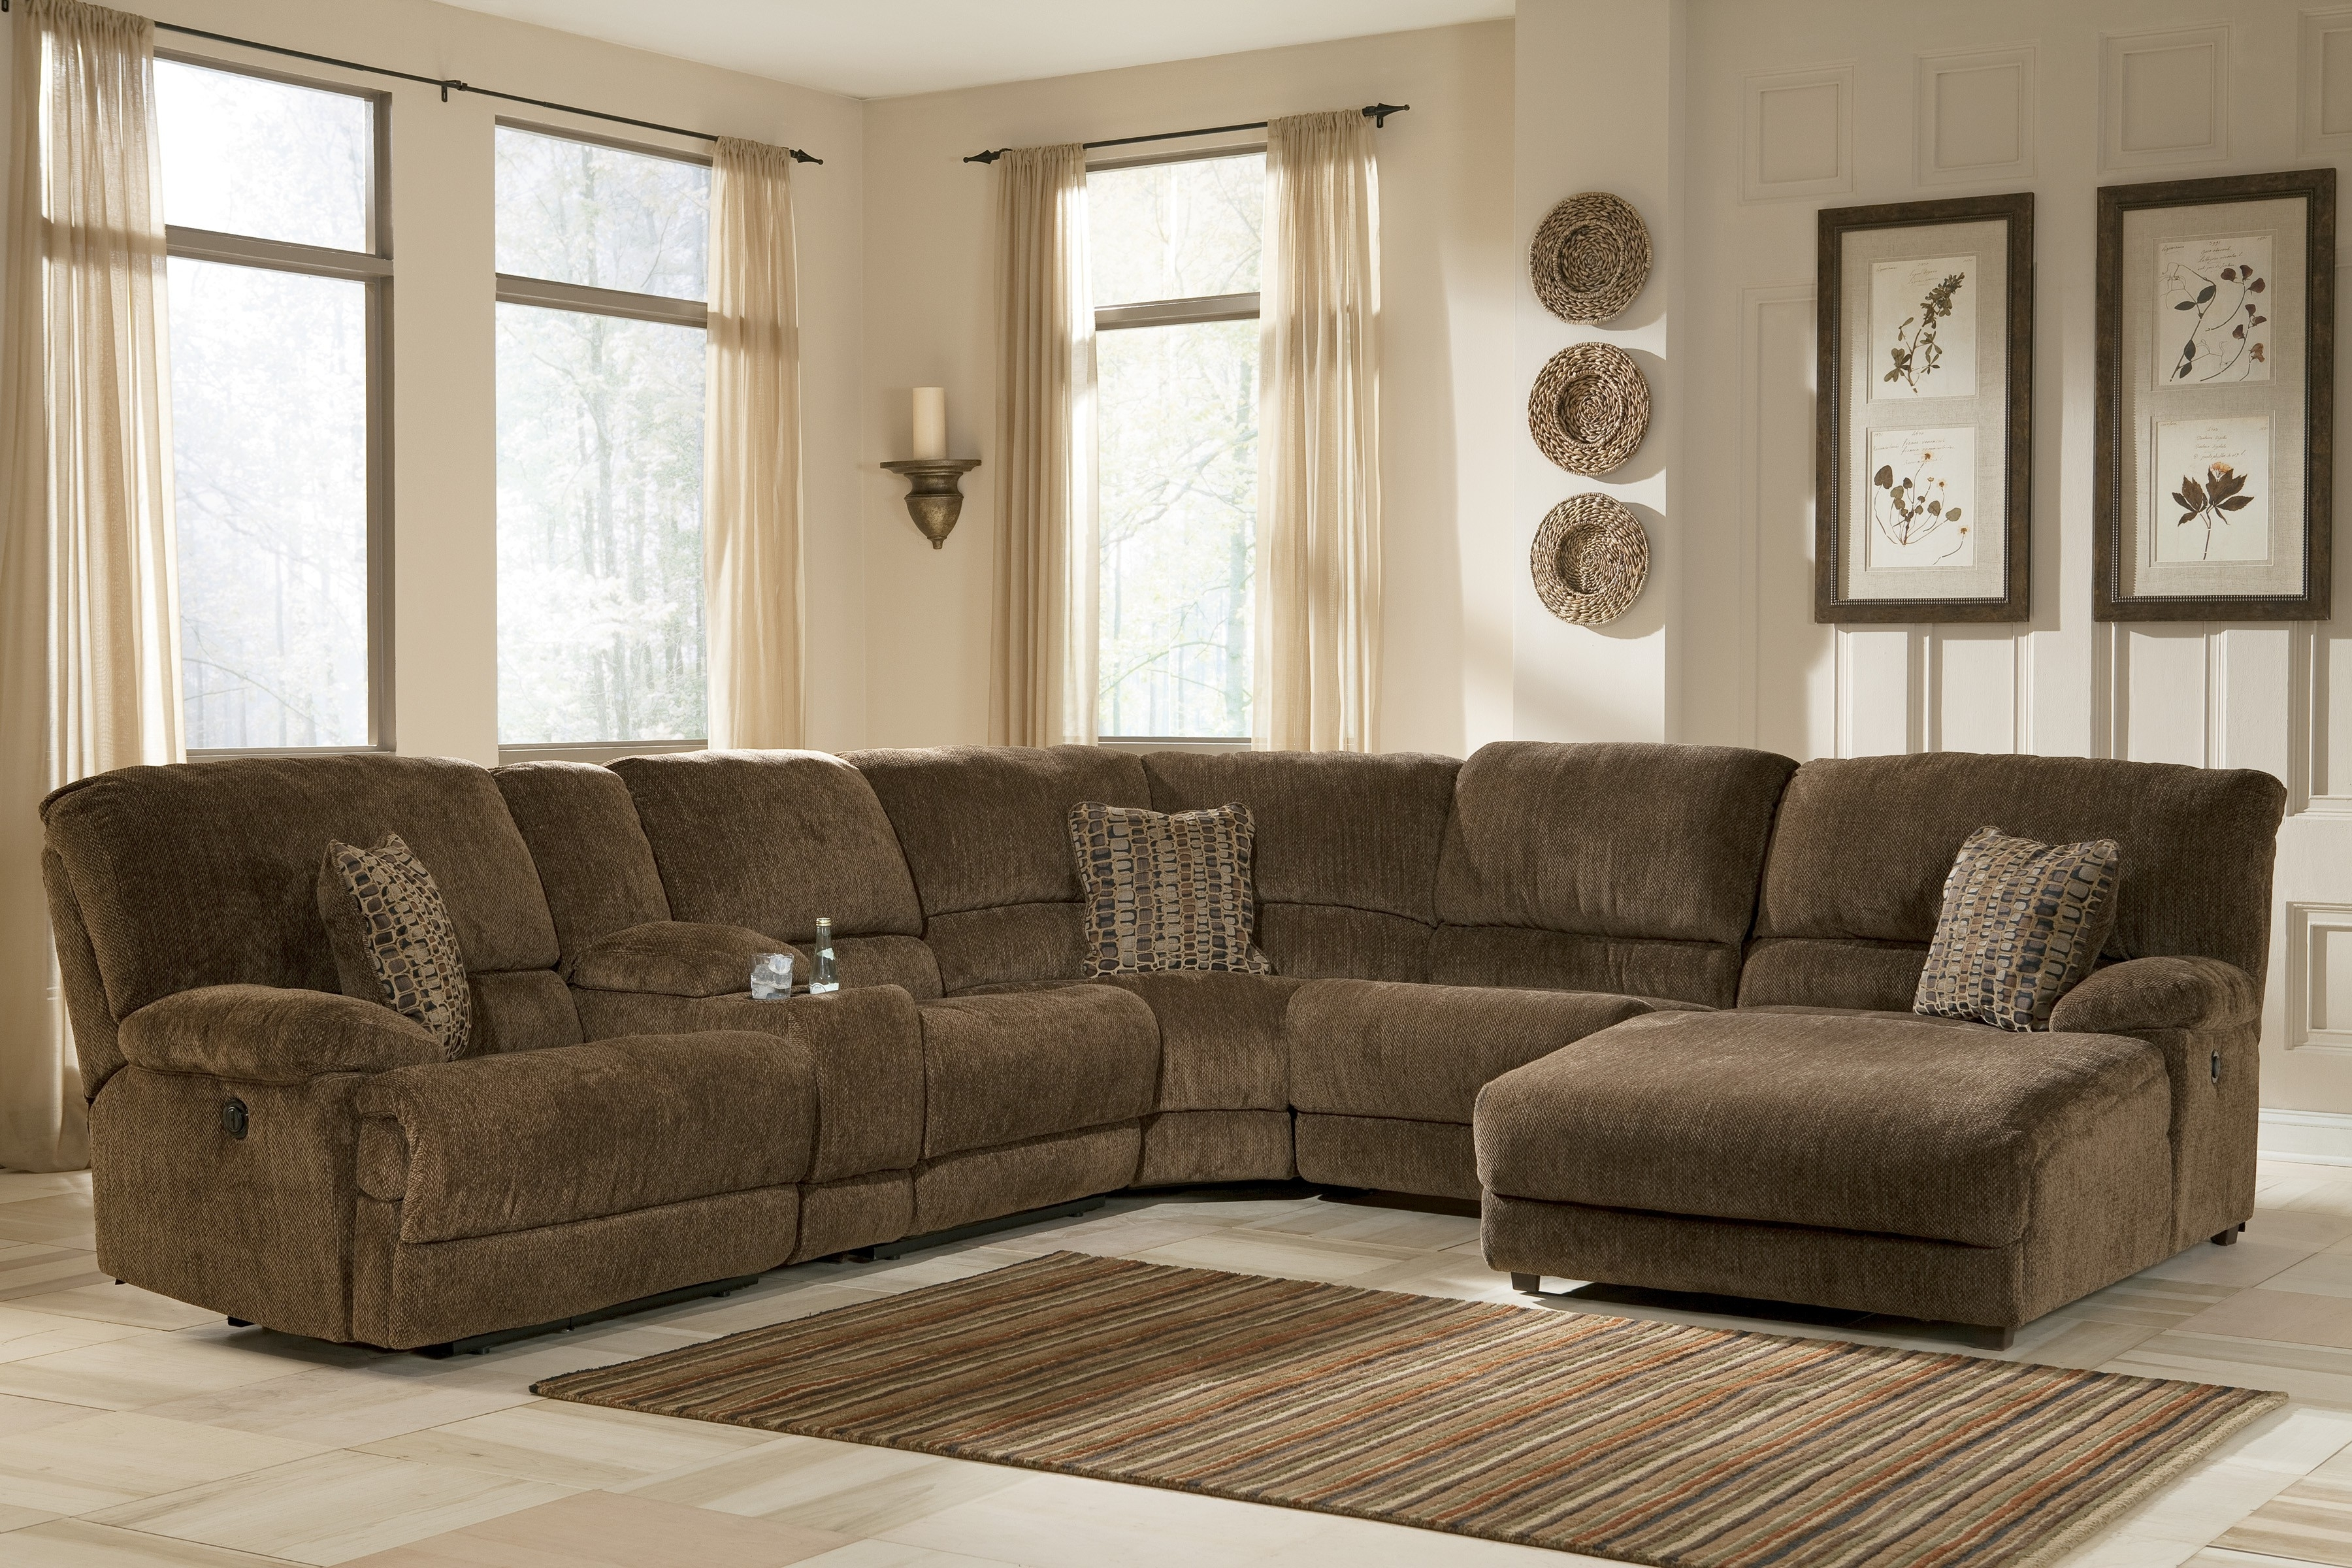 Sectional Sofas With Recliners With Regard To Recent Lazy Boy Sleeper Recliners Fabric Reclining Loveseat Full Layout (View 19 of 20)